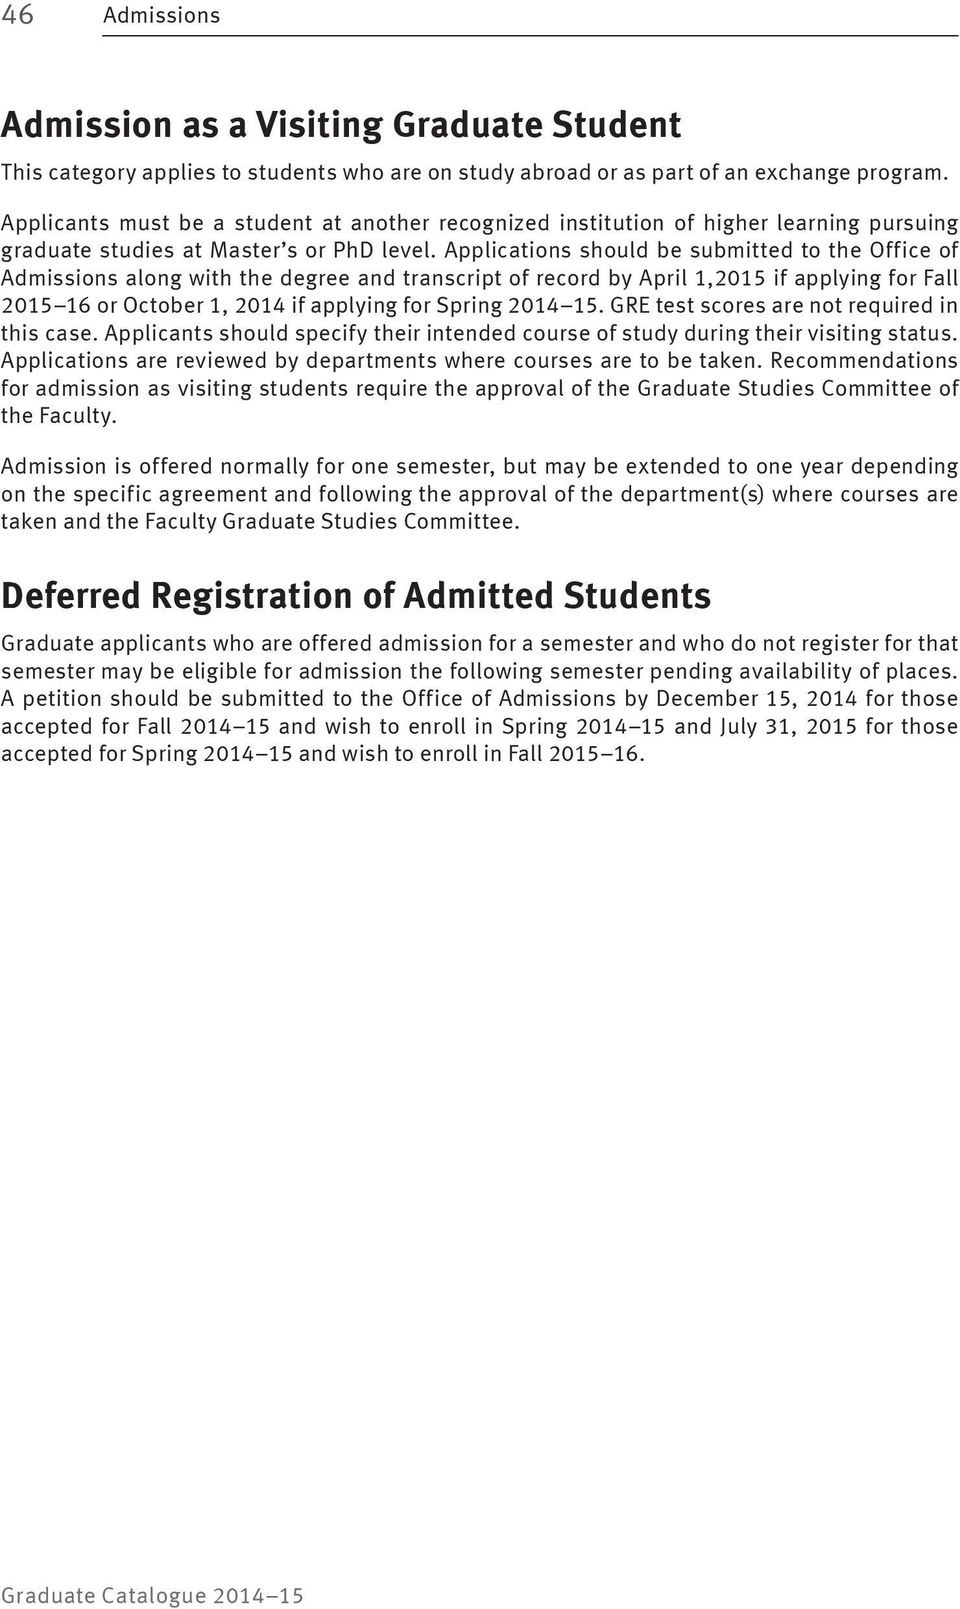 Applications should be submitted to the Office of Admissions along with the degree and transcript of record by April 1,2015 if applying for Fall 2015 16 or October 1, 2014 if applying for Spring 2014